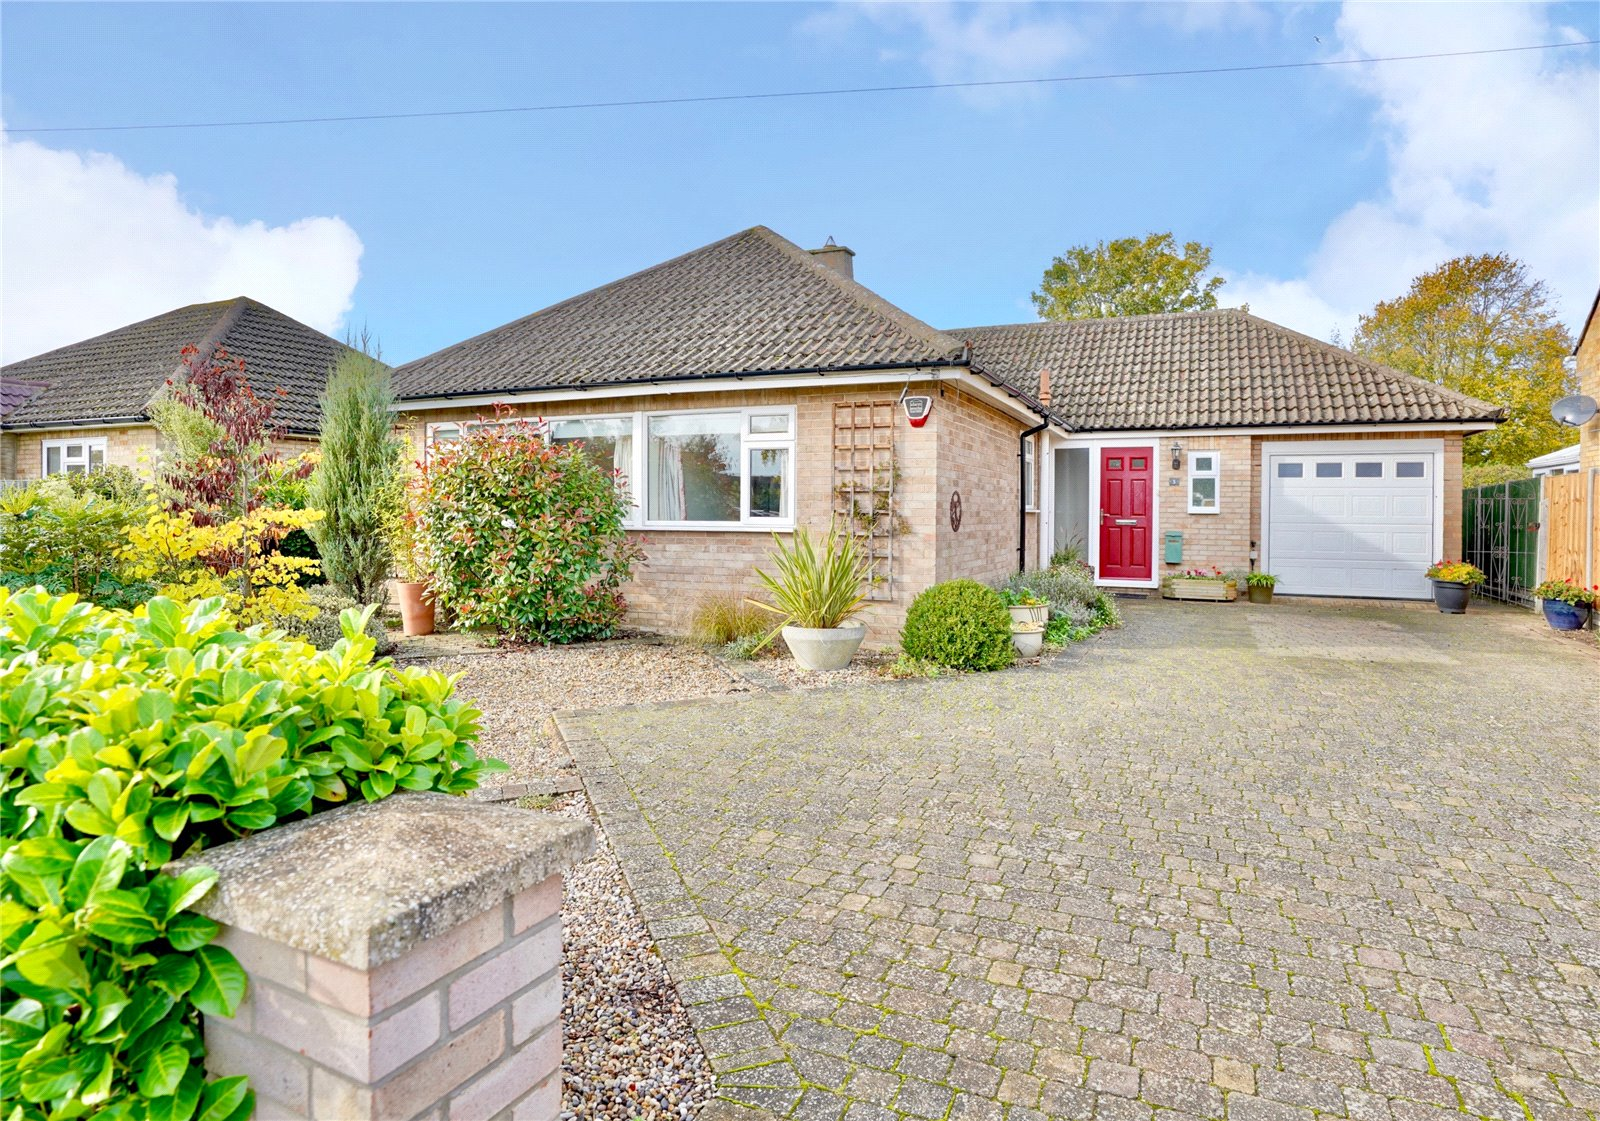 3 bed bungalow for sale in Eaton Ford, Saviles Close, PE19 7GD 0